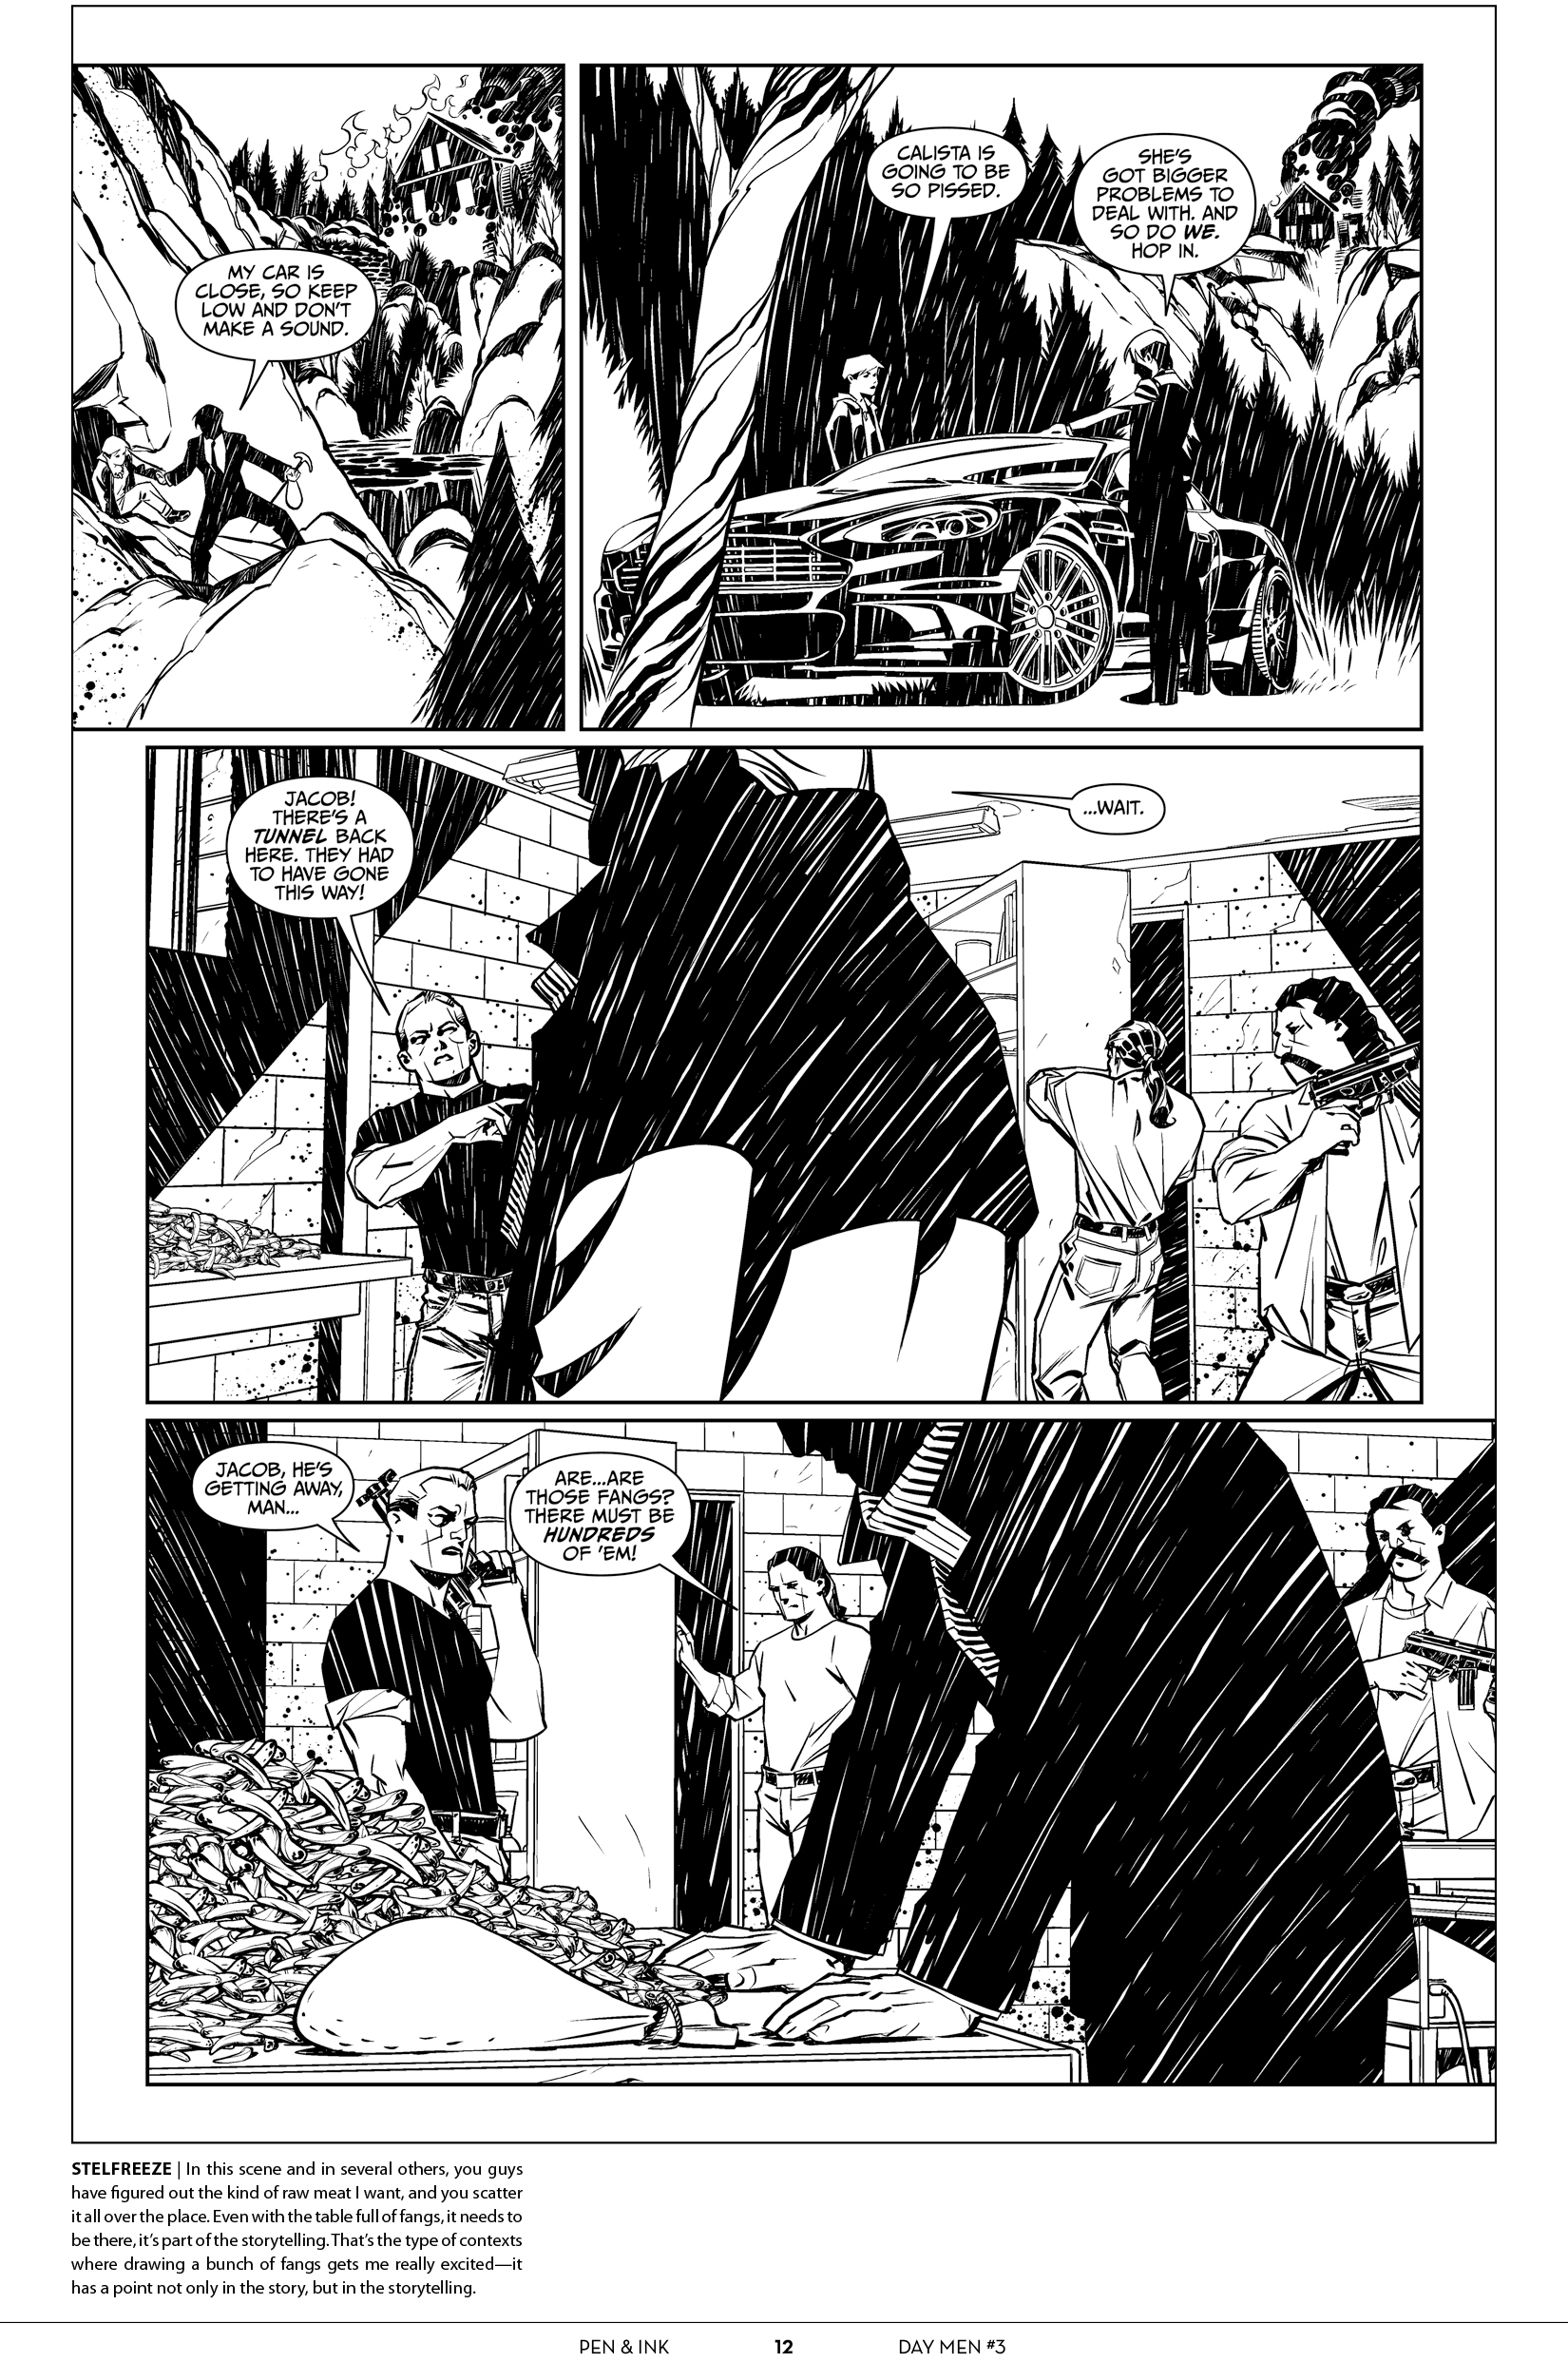 BOOM_Pen_and_Ink_Day_Men_002_PRESS-12.jpg